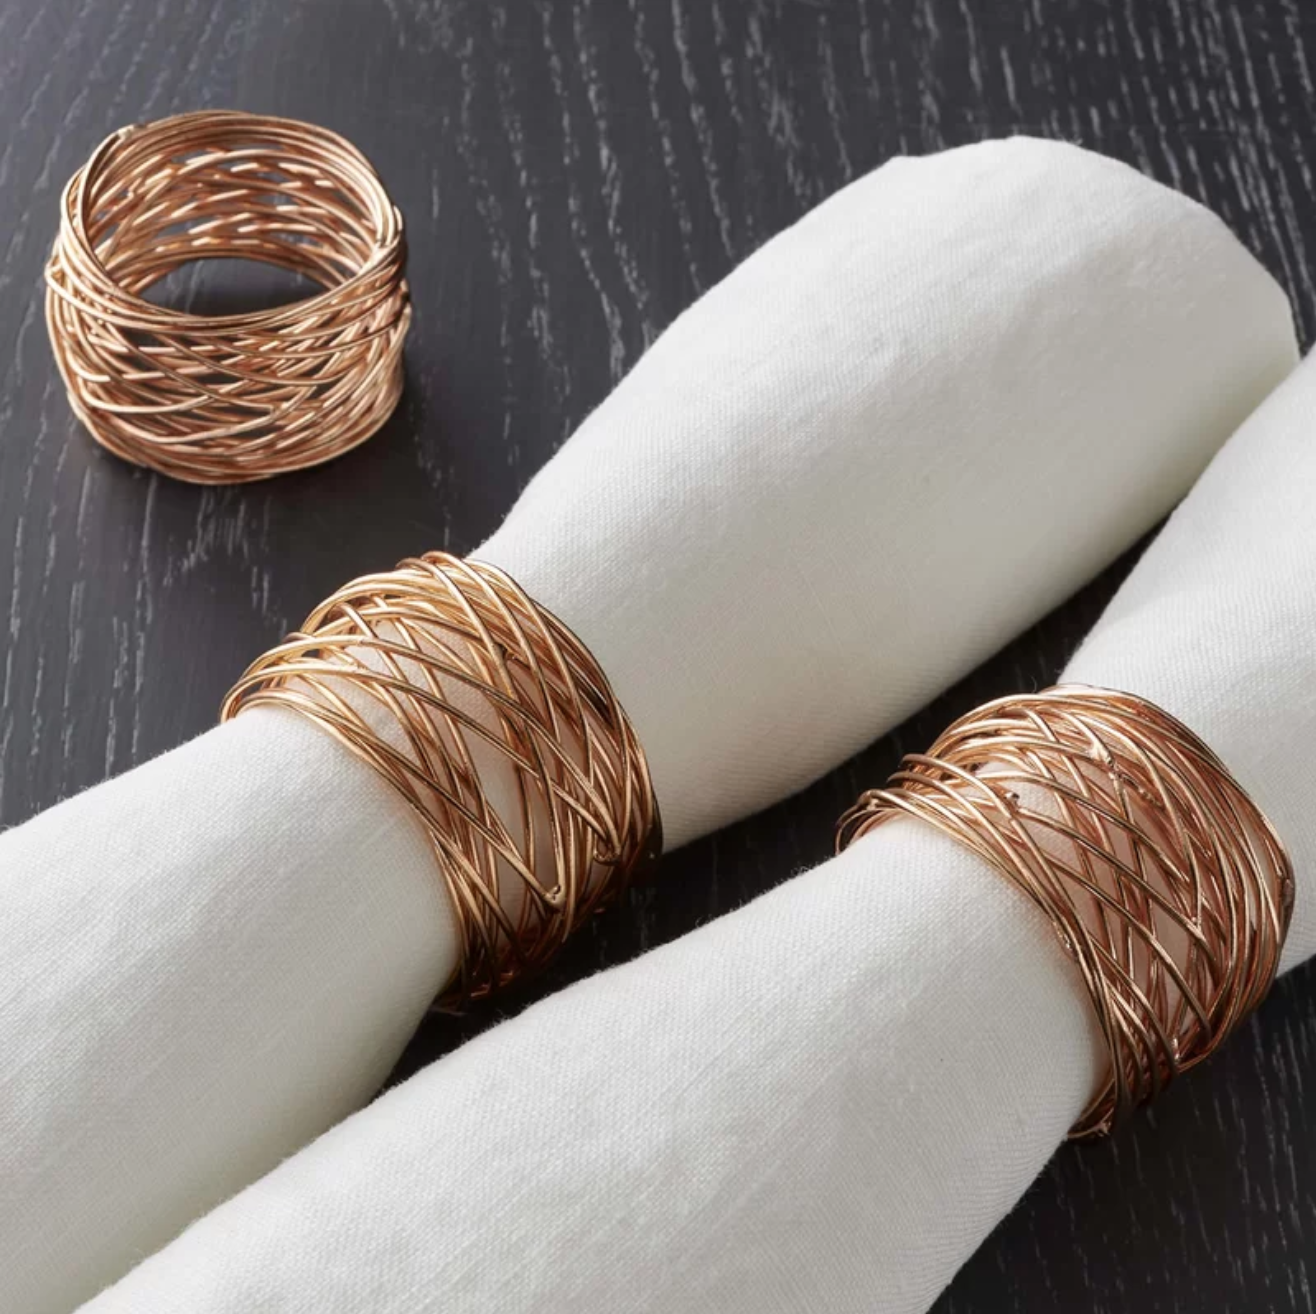 11. Copper Napkin Rings - These napkin rings are neutral so they can be used year-round, but the copper definitely adds warmth to any table setting for that perfect fall look.